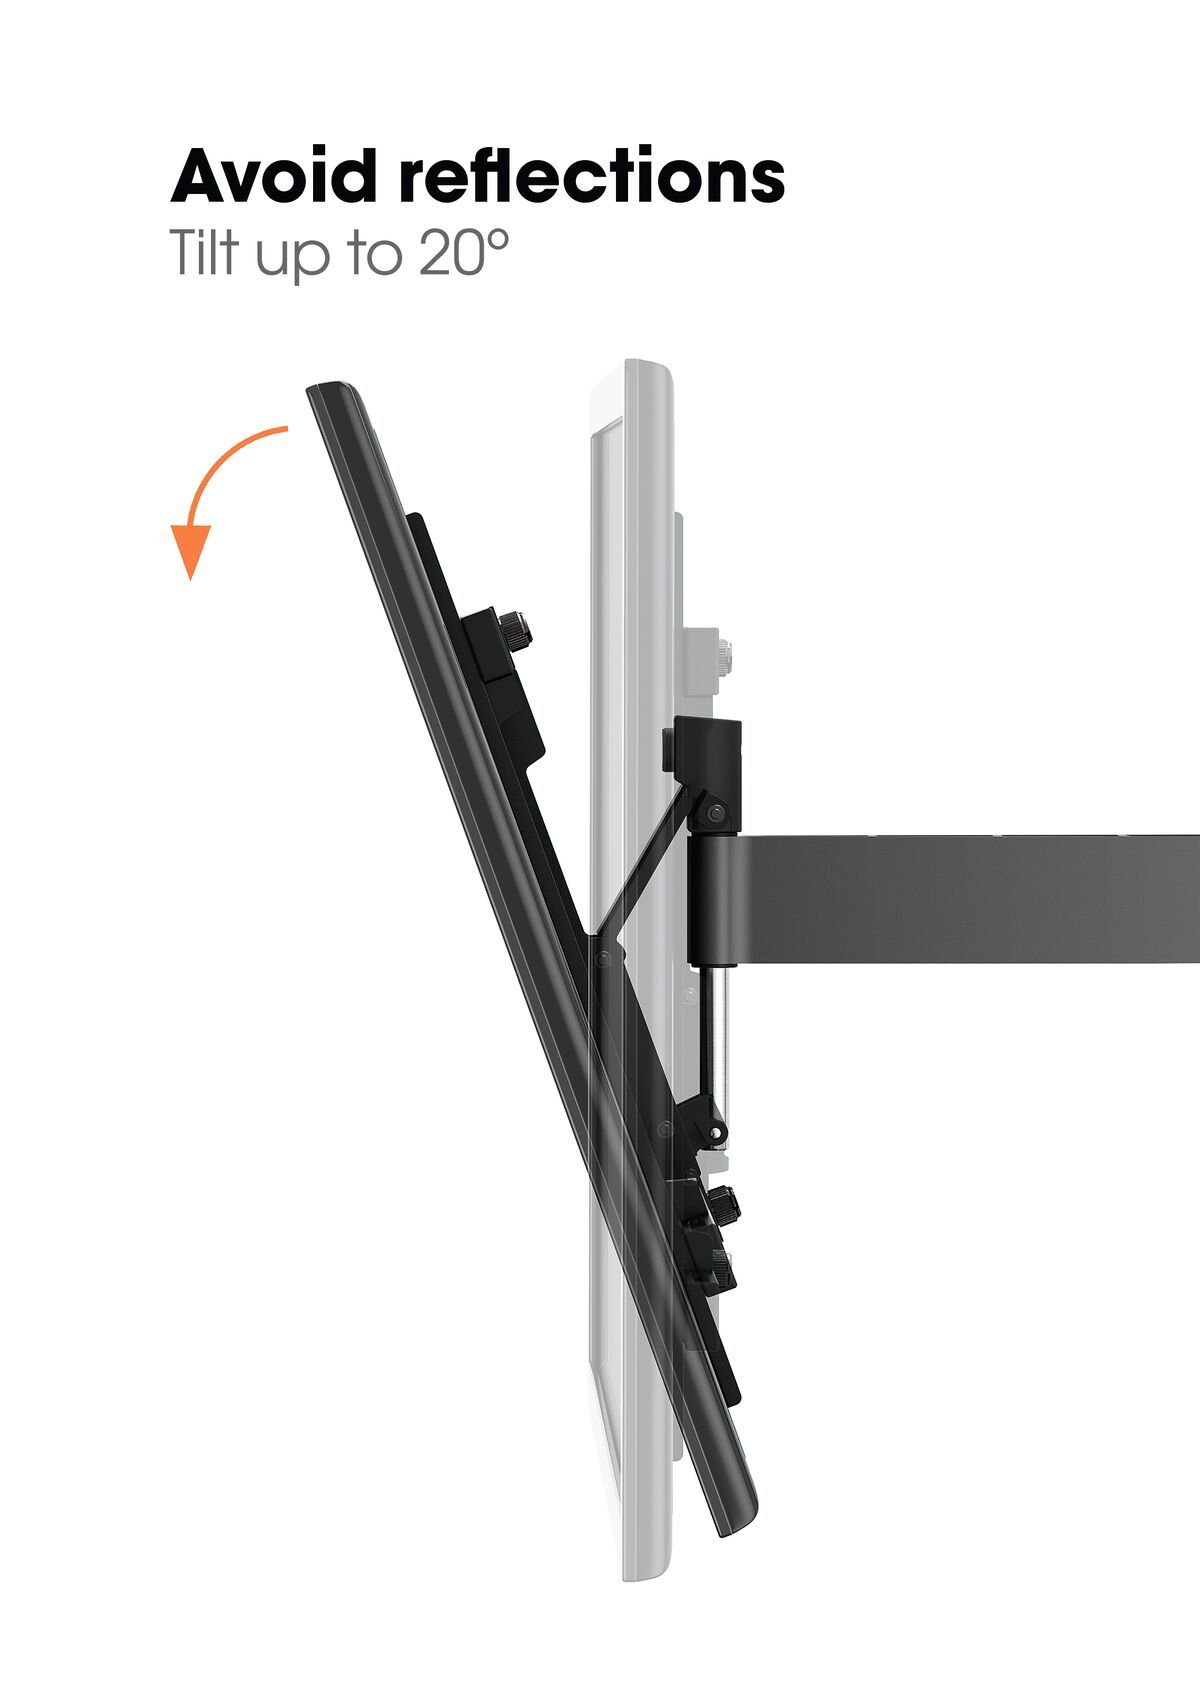 Vogel's WALL 3245 Full-Motion TV Wall Mount (black) - Suitable for Full motion (up to 180°) - Suitable for Tilt up to 20° - Suitable for USP